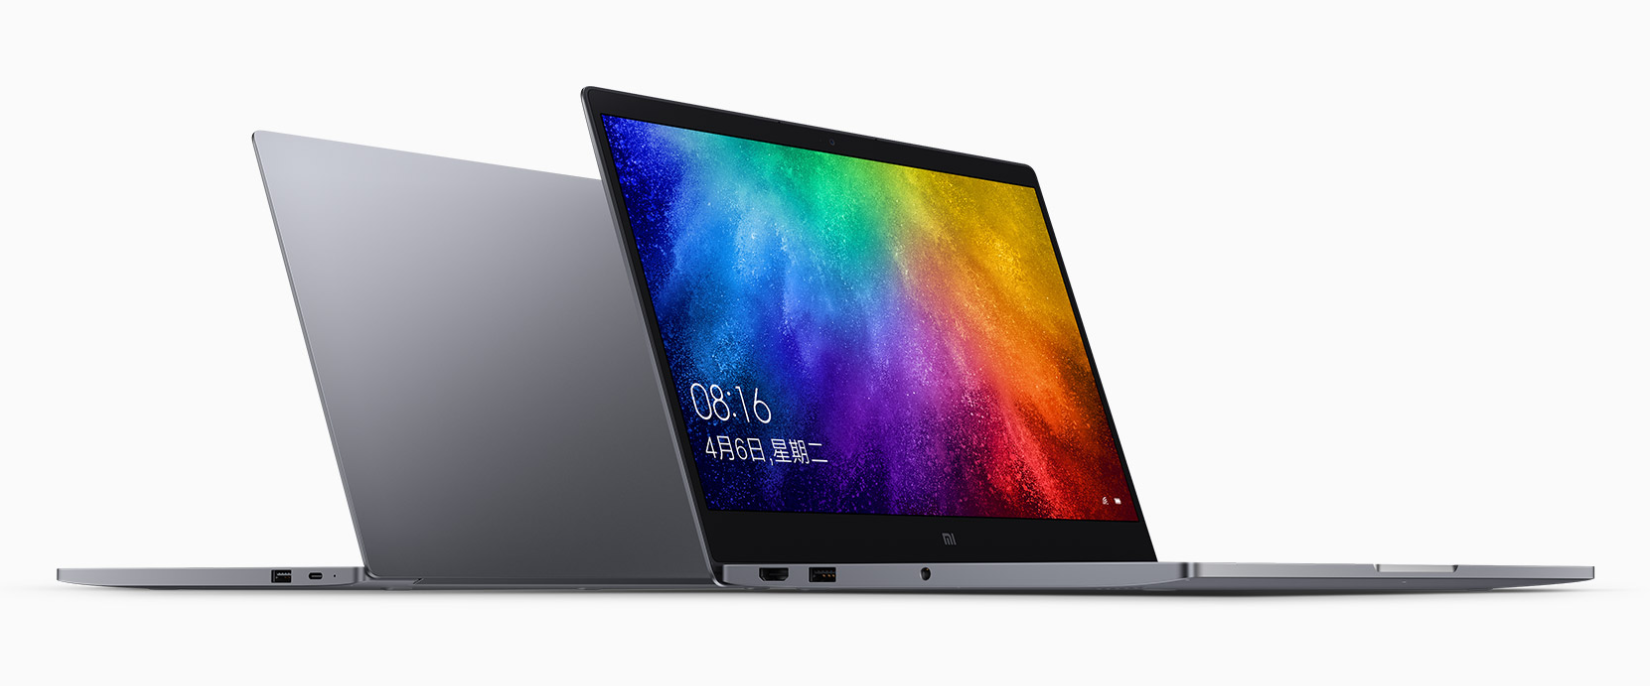 Xiaomi Mi Notebook Air 13.3 i5-8250U 8/256 GB – GearBest